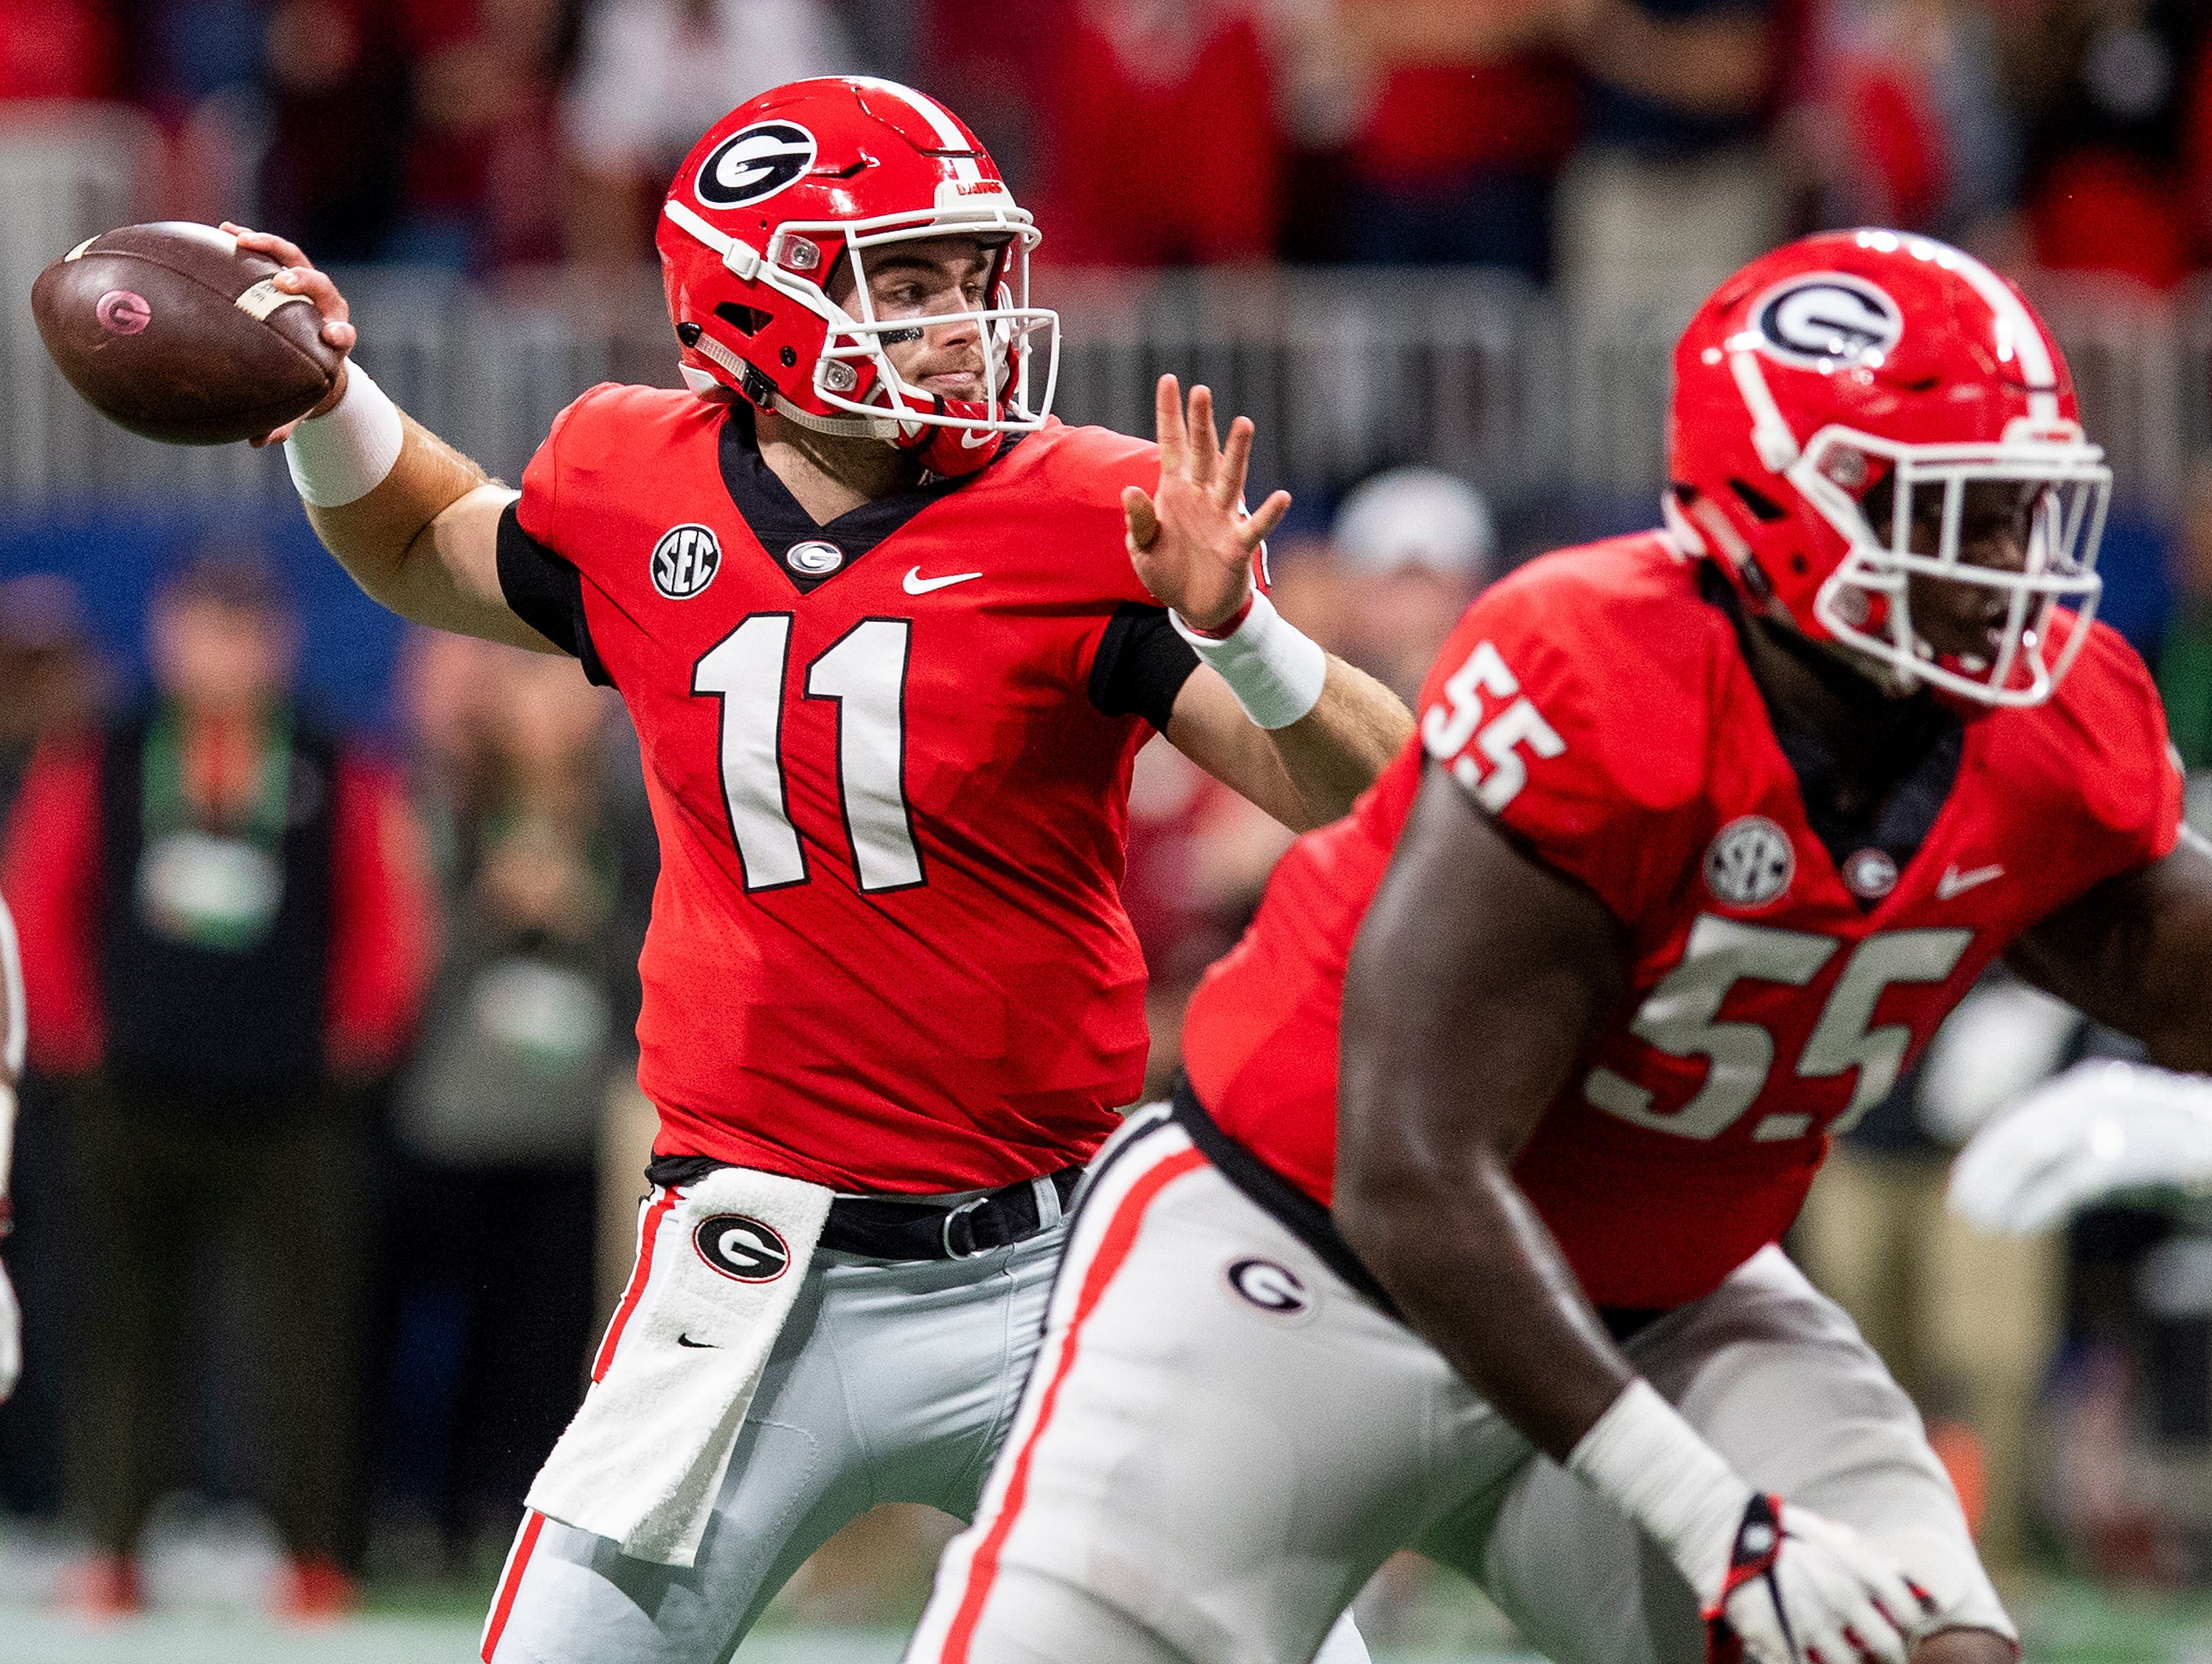 Georgia quarterback Jake Fromm (11) passes against Alabama during first half action of the SEC Championship Game at Mercedes Benz Stadium in Atlanta, Ga., on Saturday December 1, 2018.